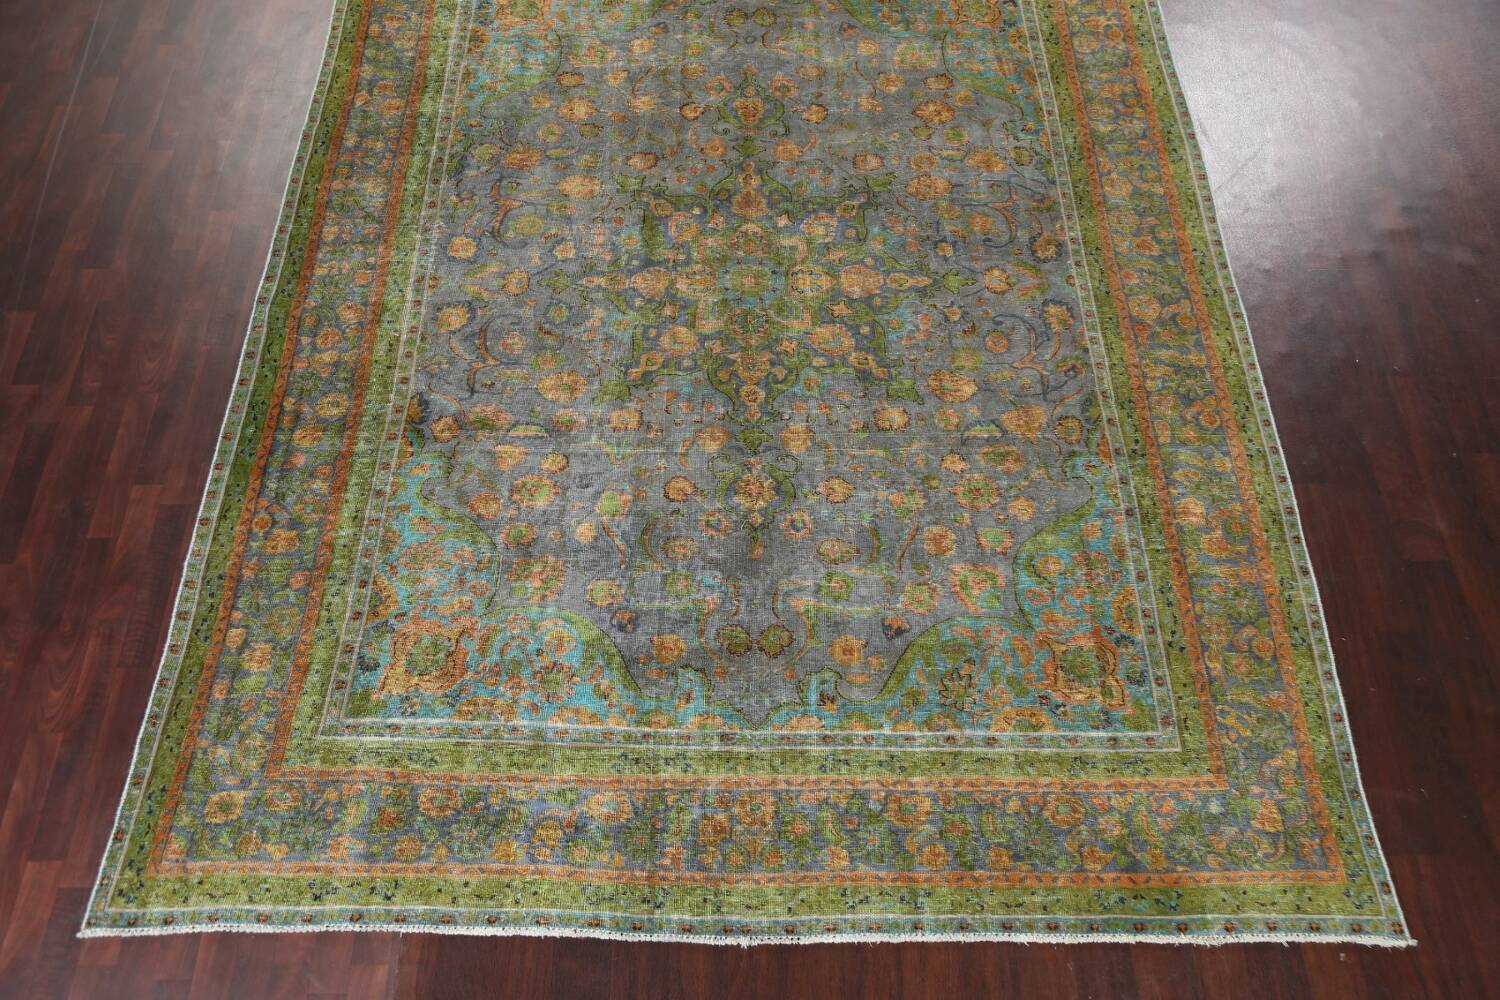 Antique Distressed Over-Dye Tabriz Persian Area Rug 9x12 image 6